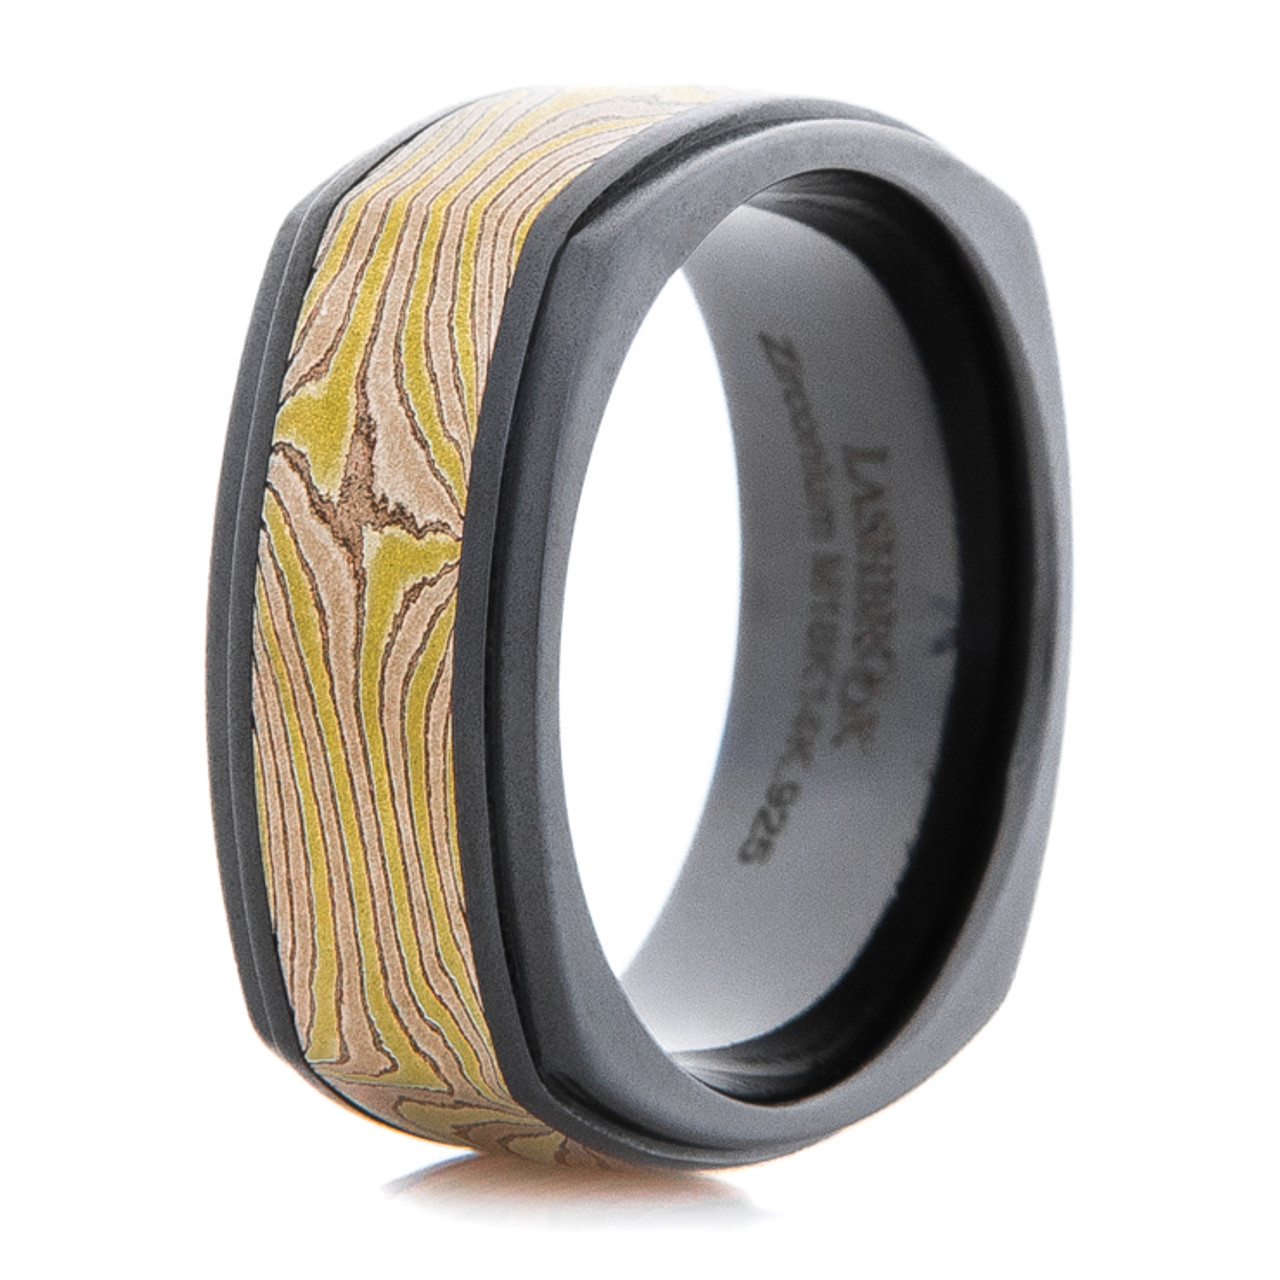 ring solo gane epages gold xperience japanese sf mokume the gb shop rings en